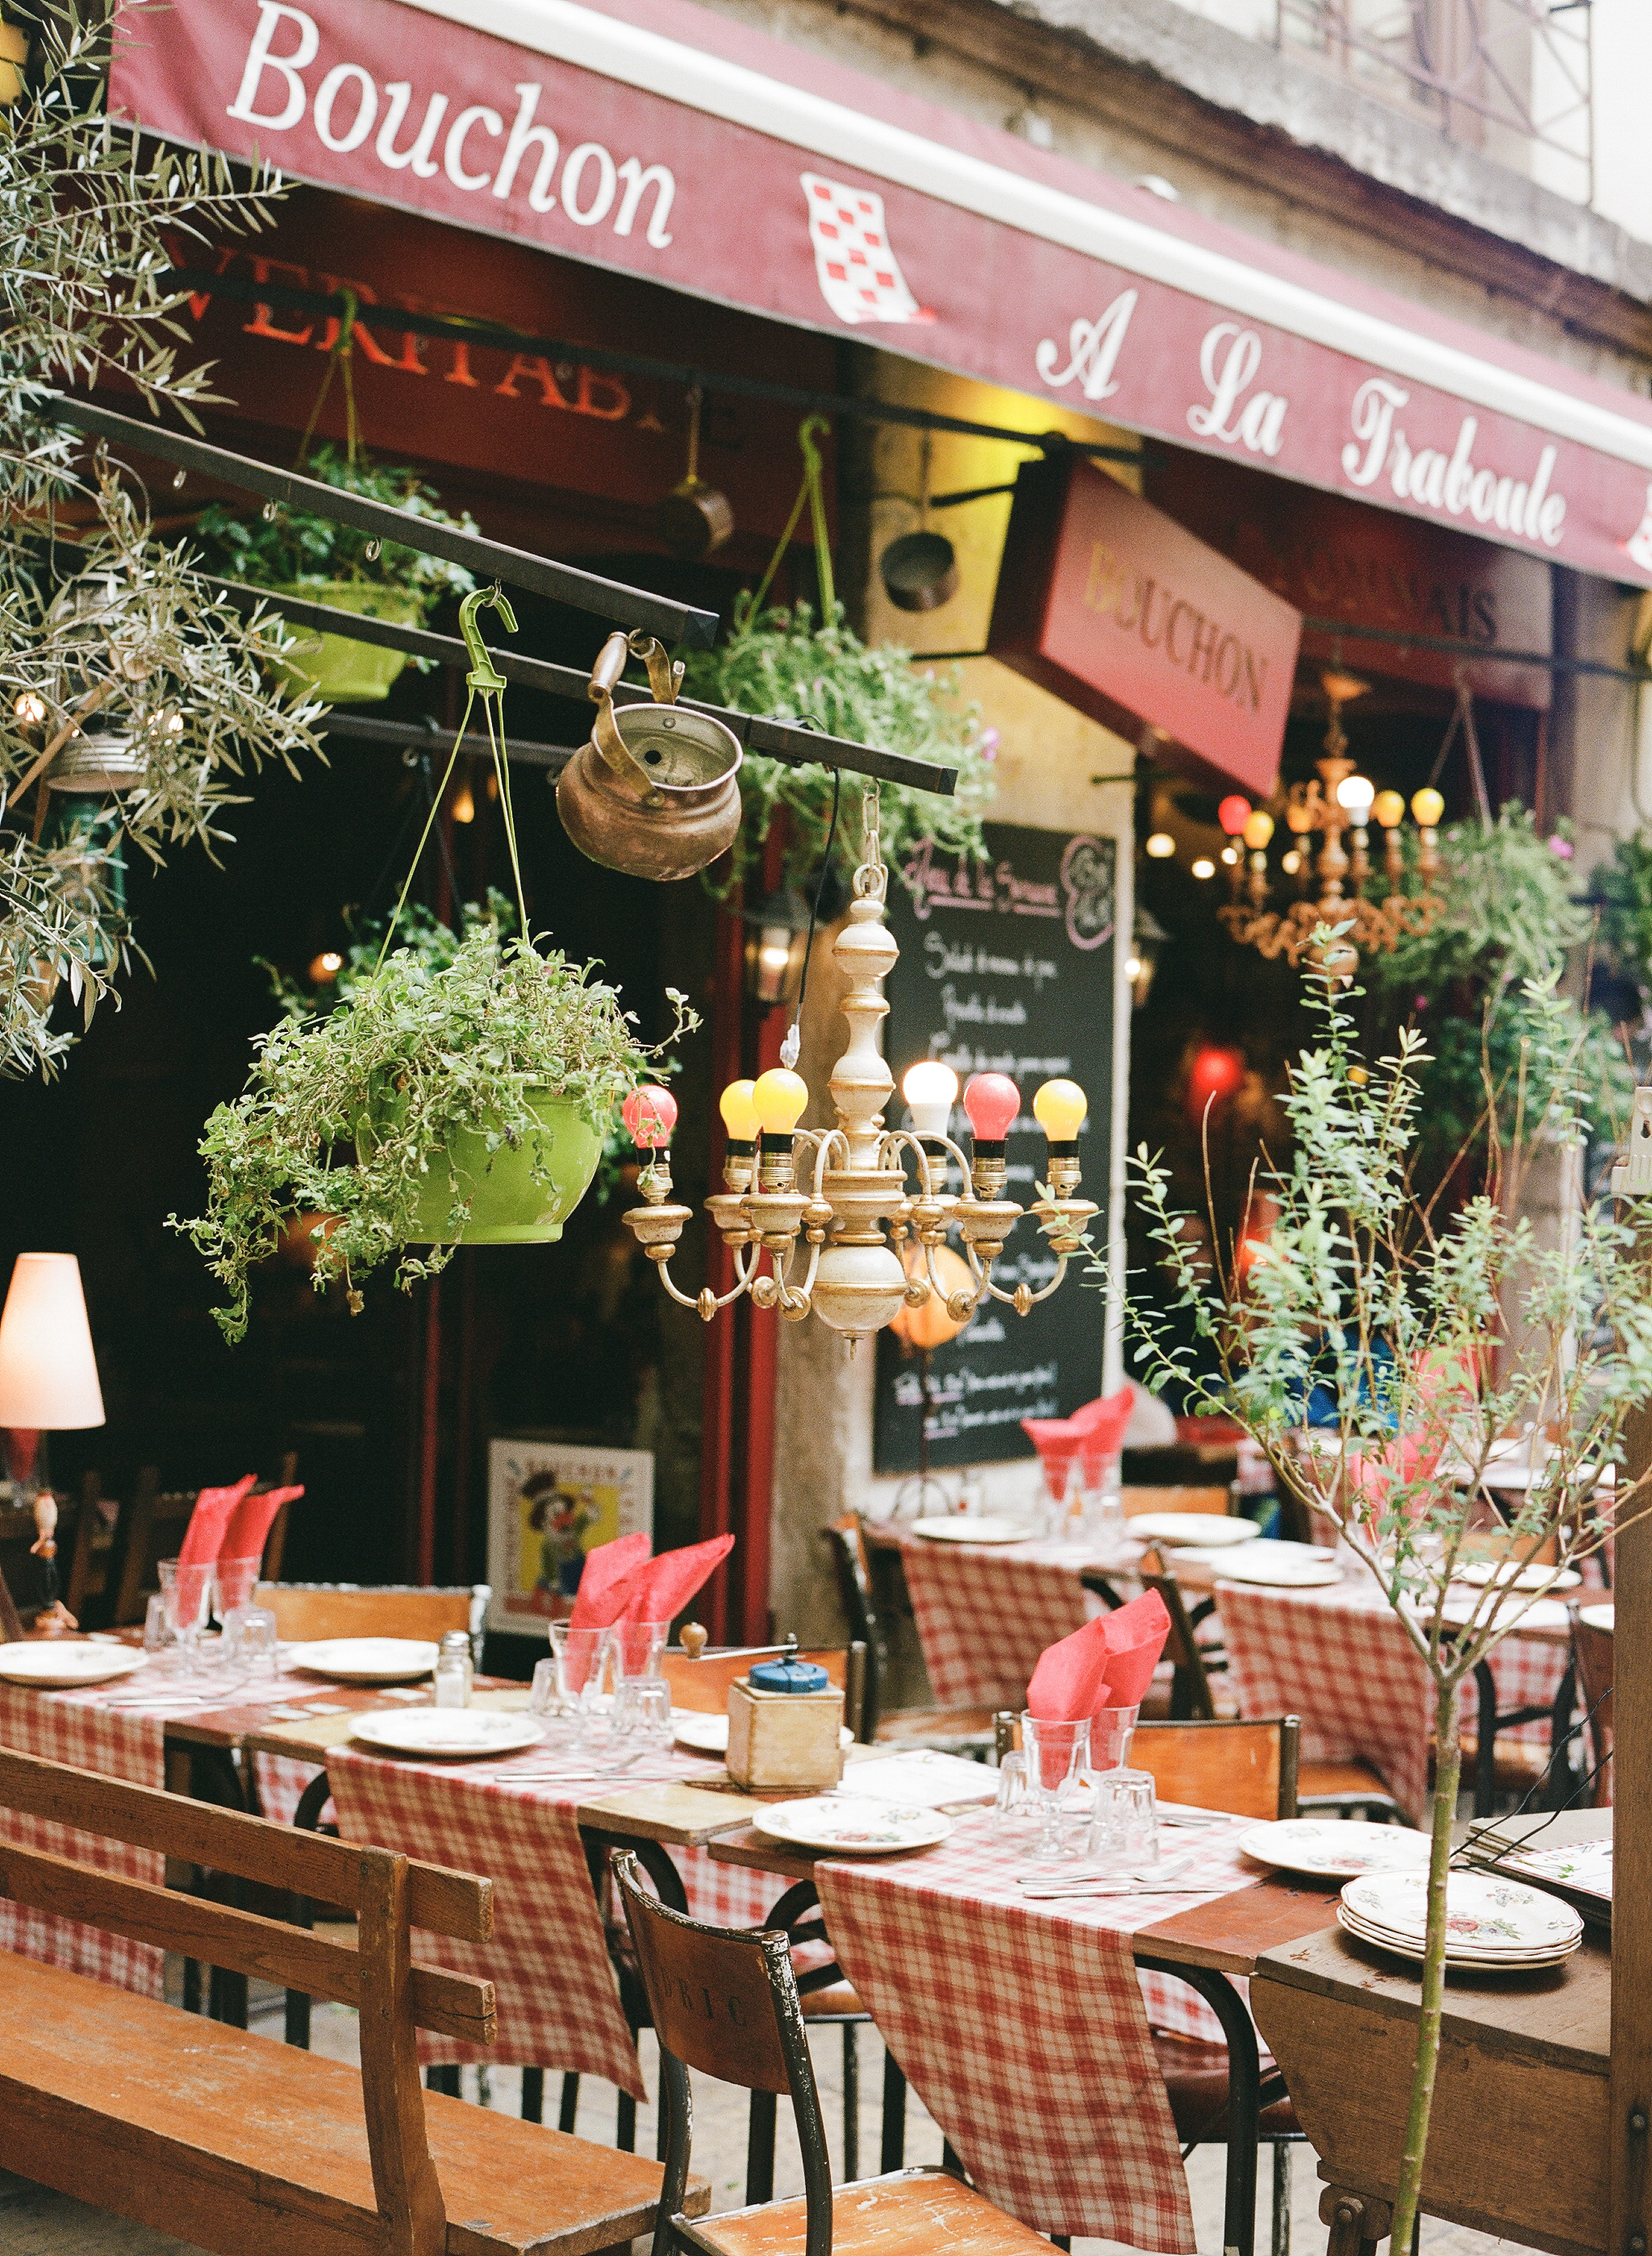 A cute outdoor cafe in Lyon displaying checkered tablecloths and a friendly atmosphere; photo by Sylvie Gil